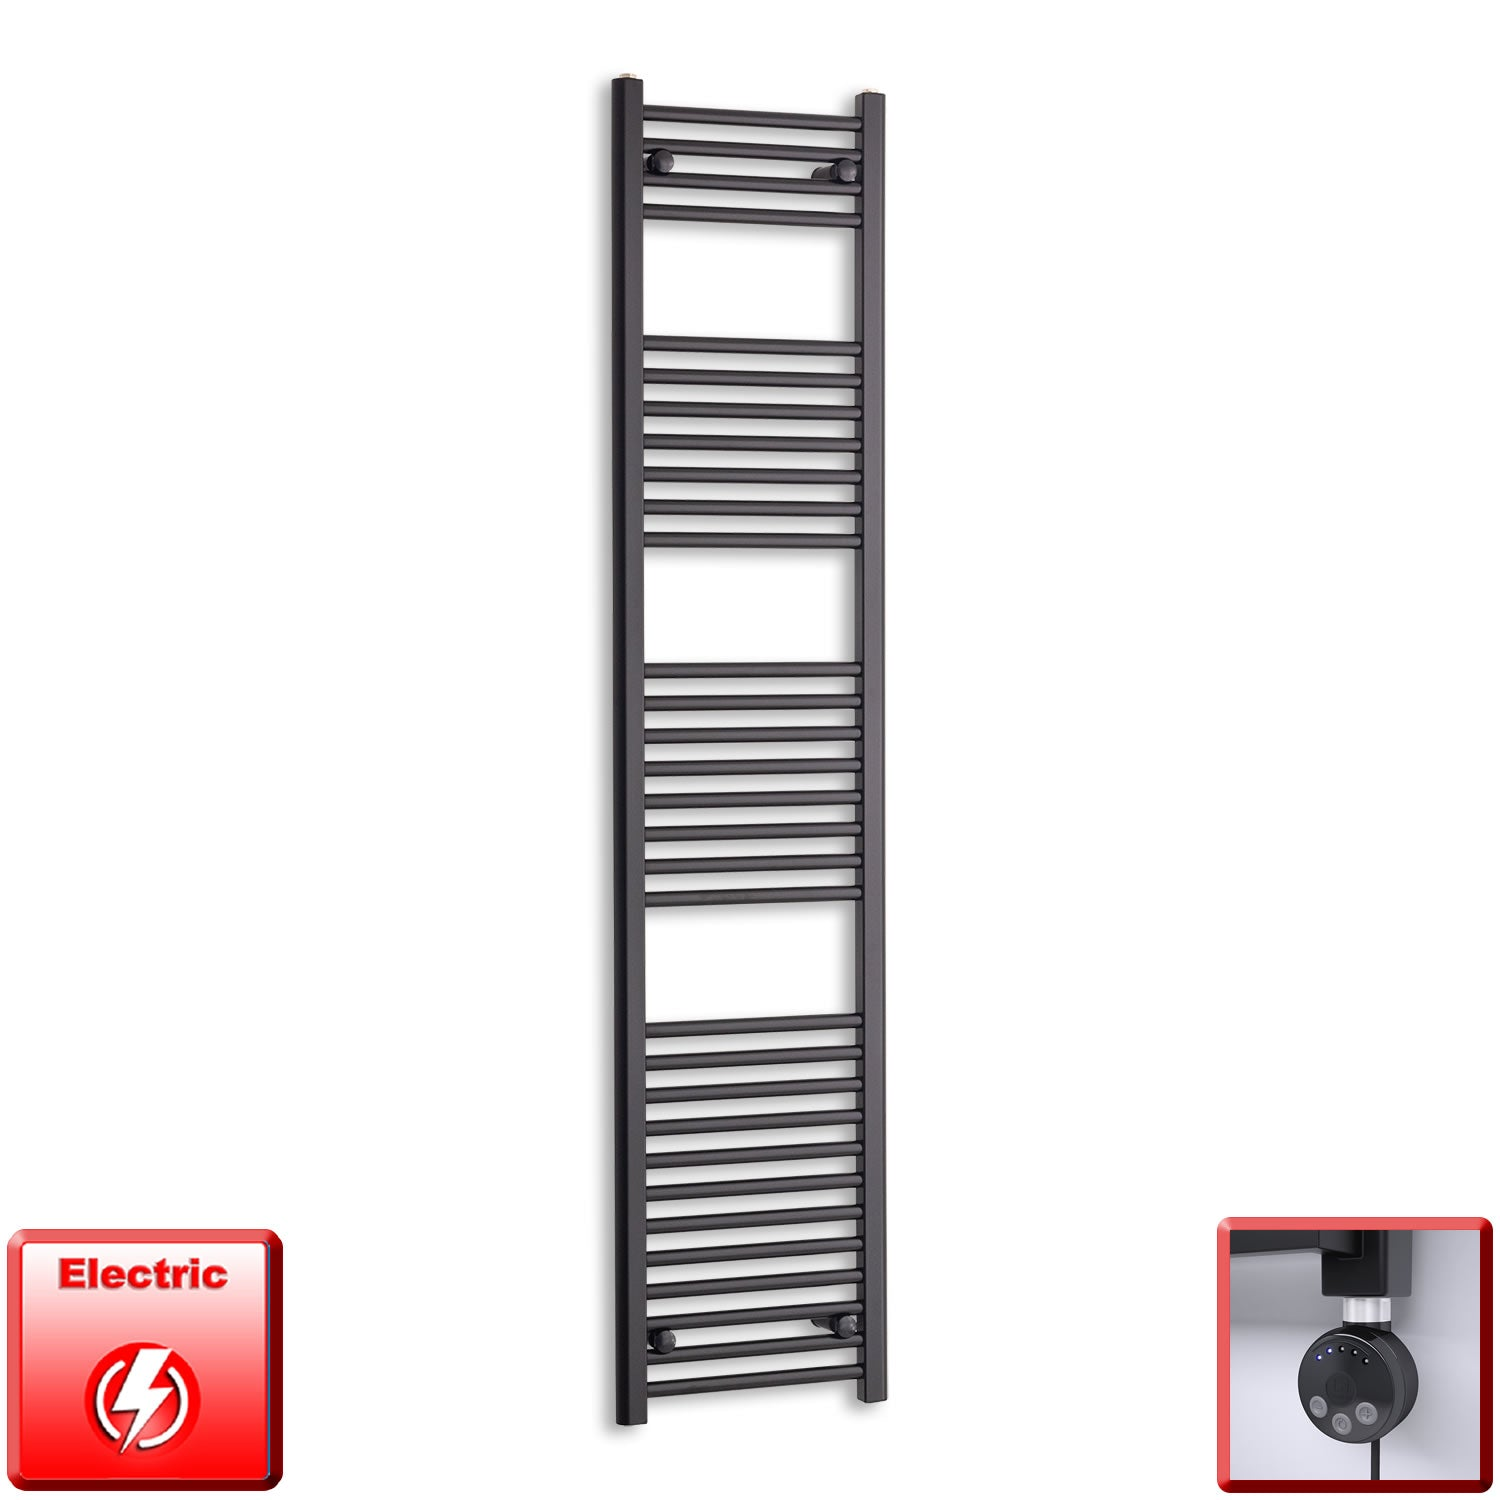 400mm Wide 1800mm High Pre-Filled Black Electric Towel Rail Radiator With Thermostatic MEG Element